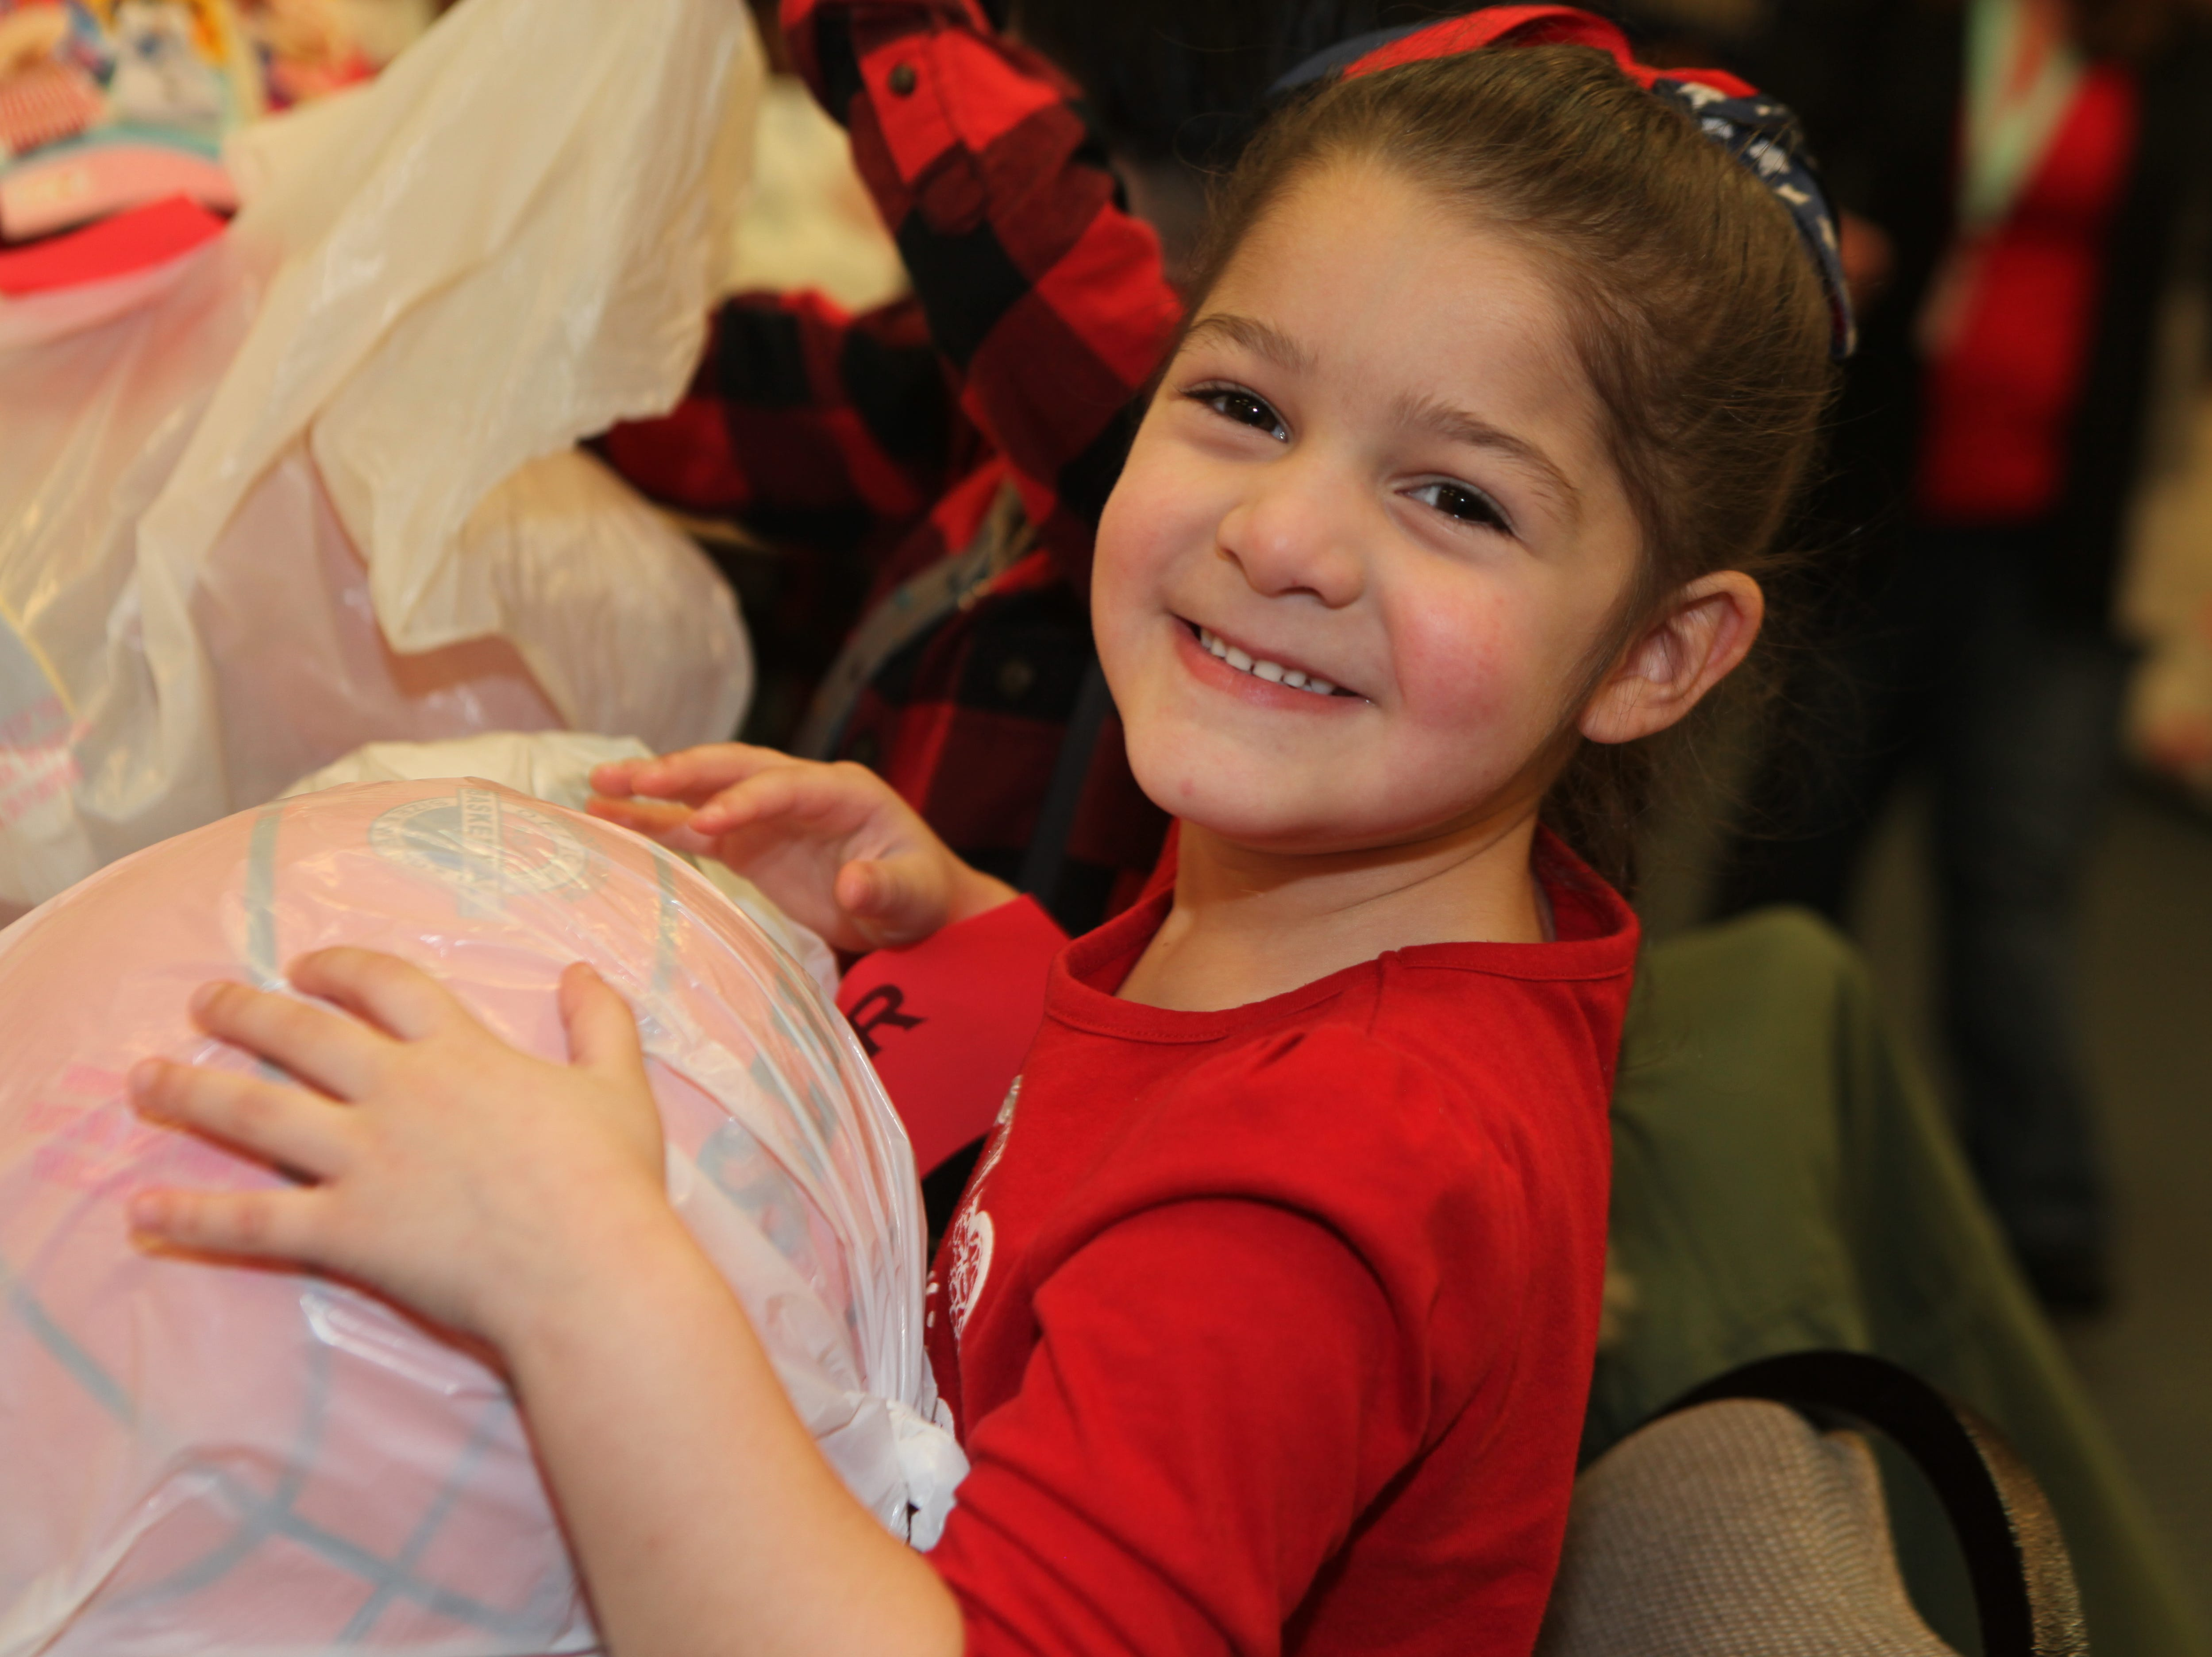 The Clarksville Kiwanis Club held its annual Christmas Party giving 144 Head Start children a visit with Santa Claus and a bag full of early Christmas presents, Dec. 4, 2018 in Clarksville, Tenn.